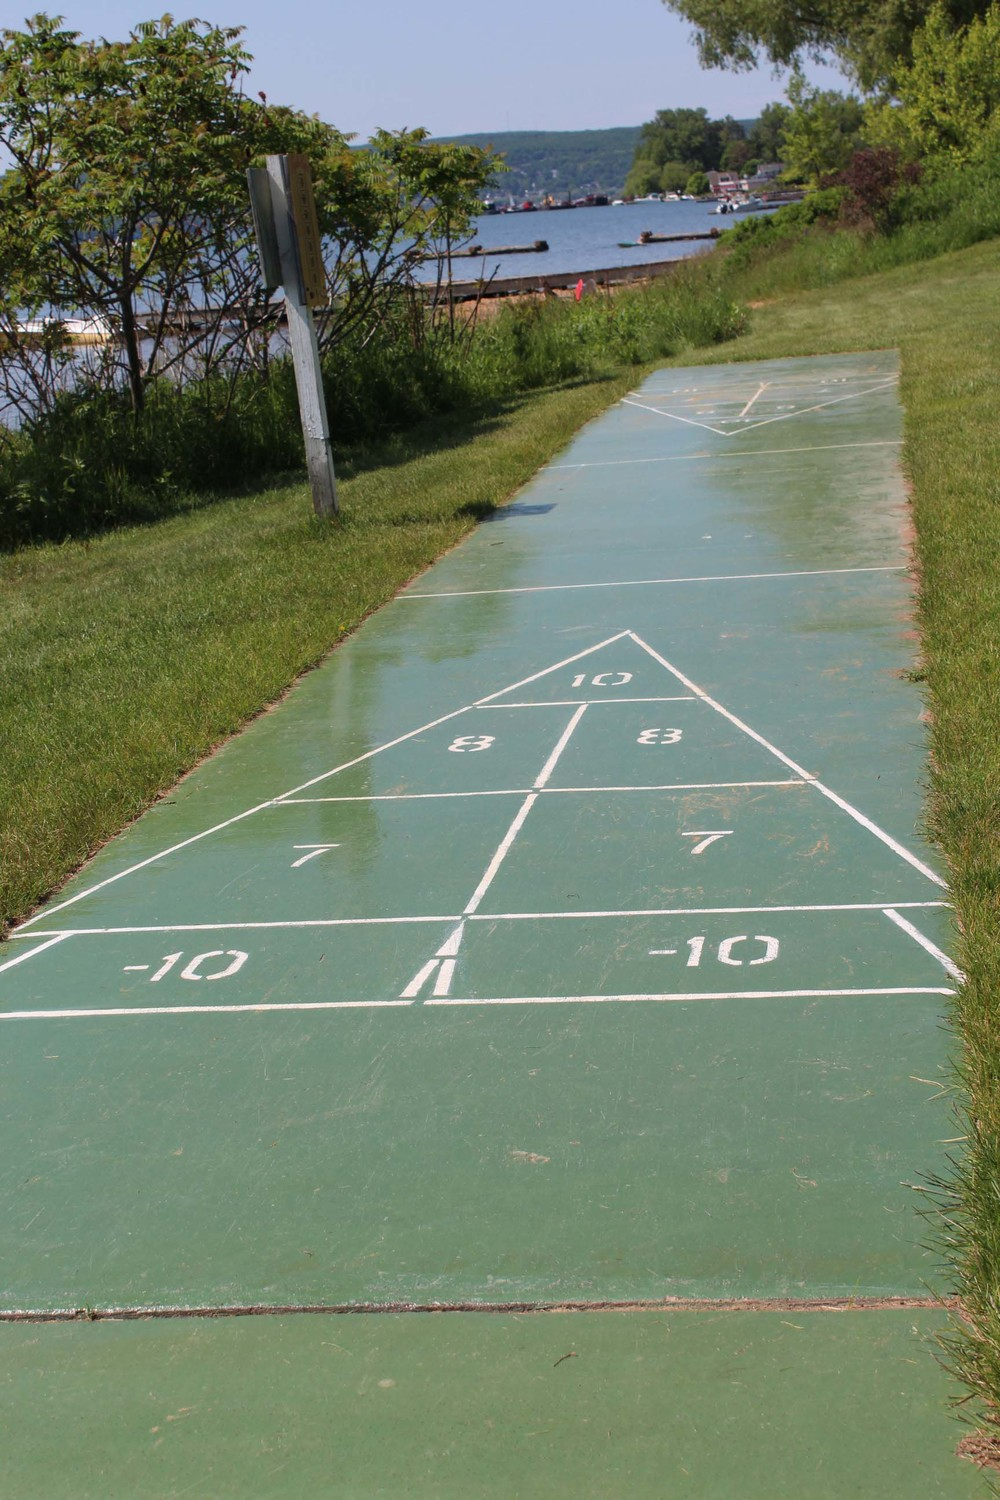 play some shuffleboard with the kids